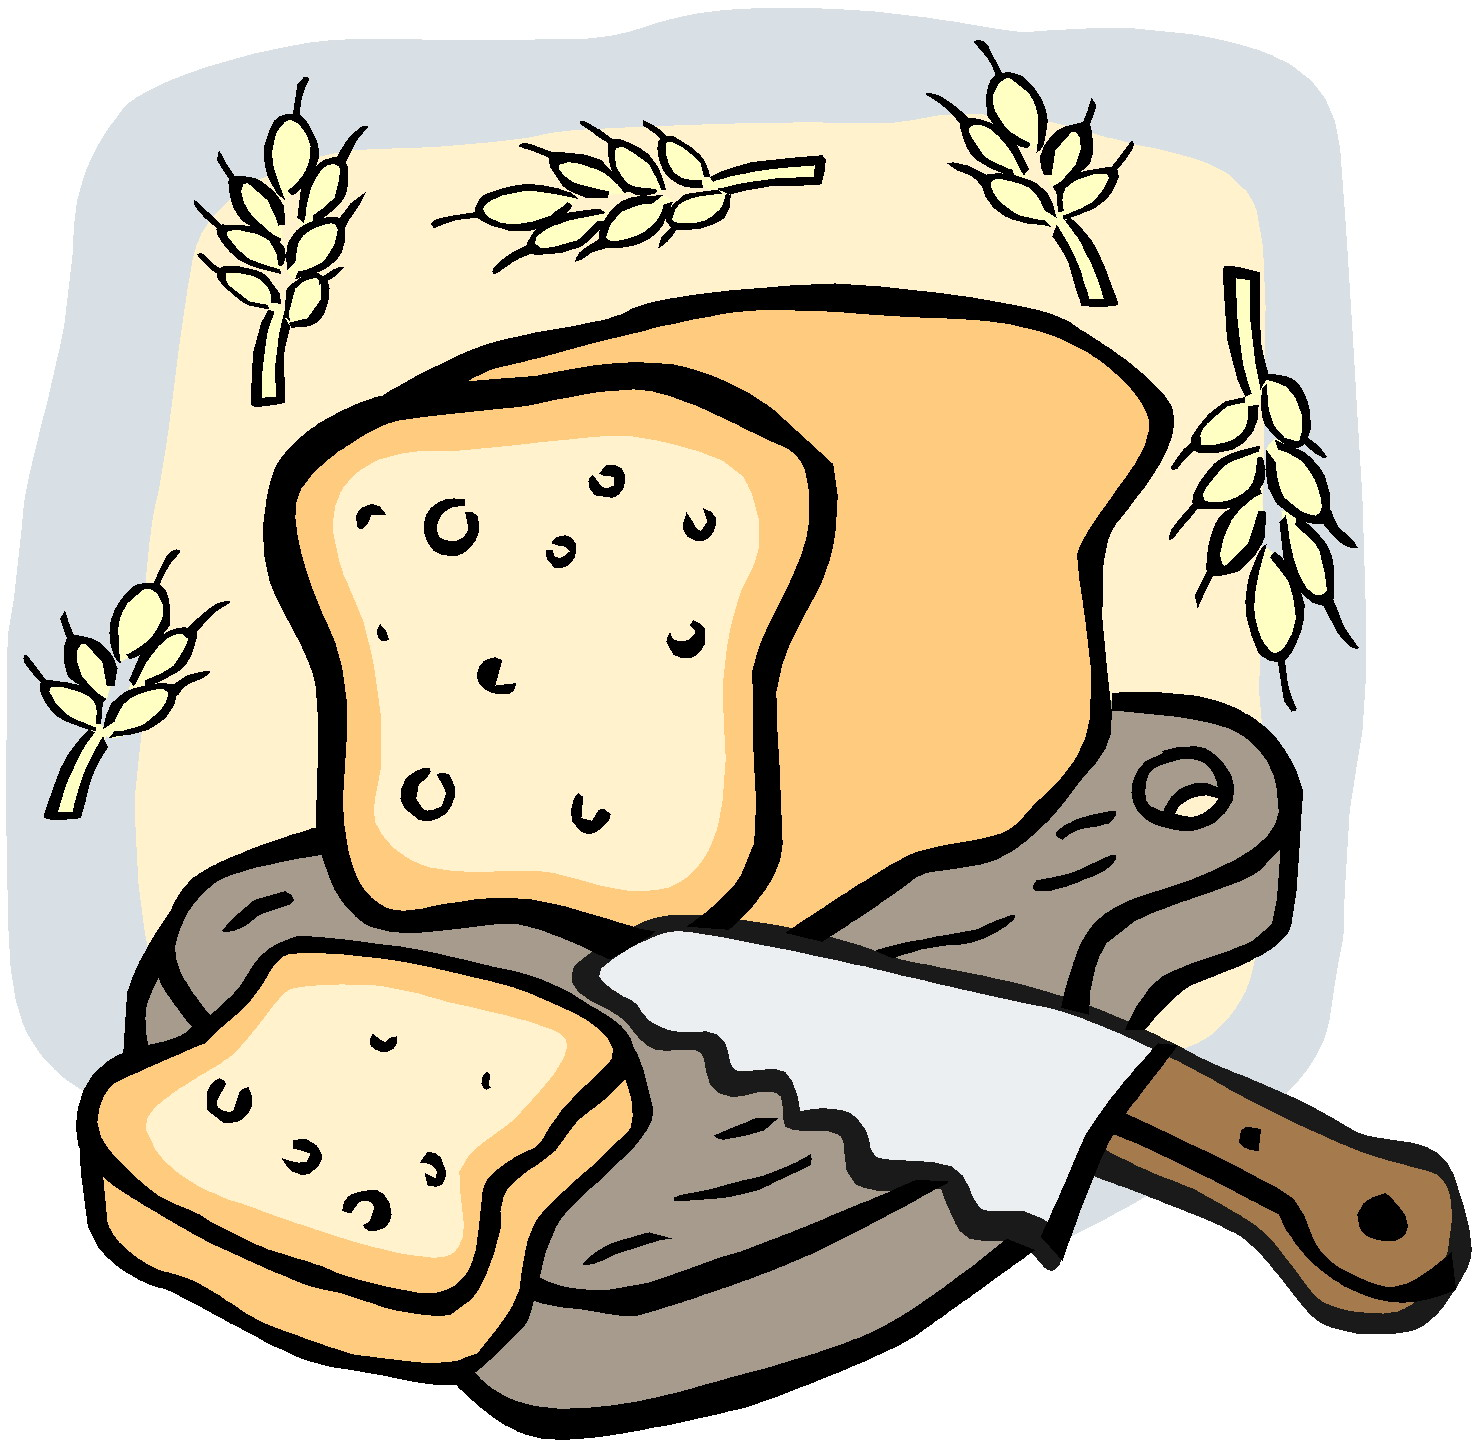 Loaves of bread clip art loaves 3 clipart